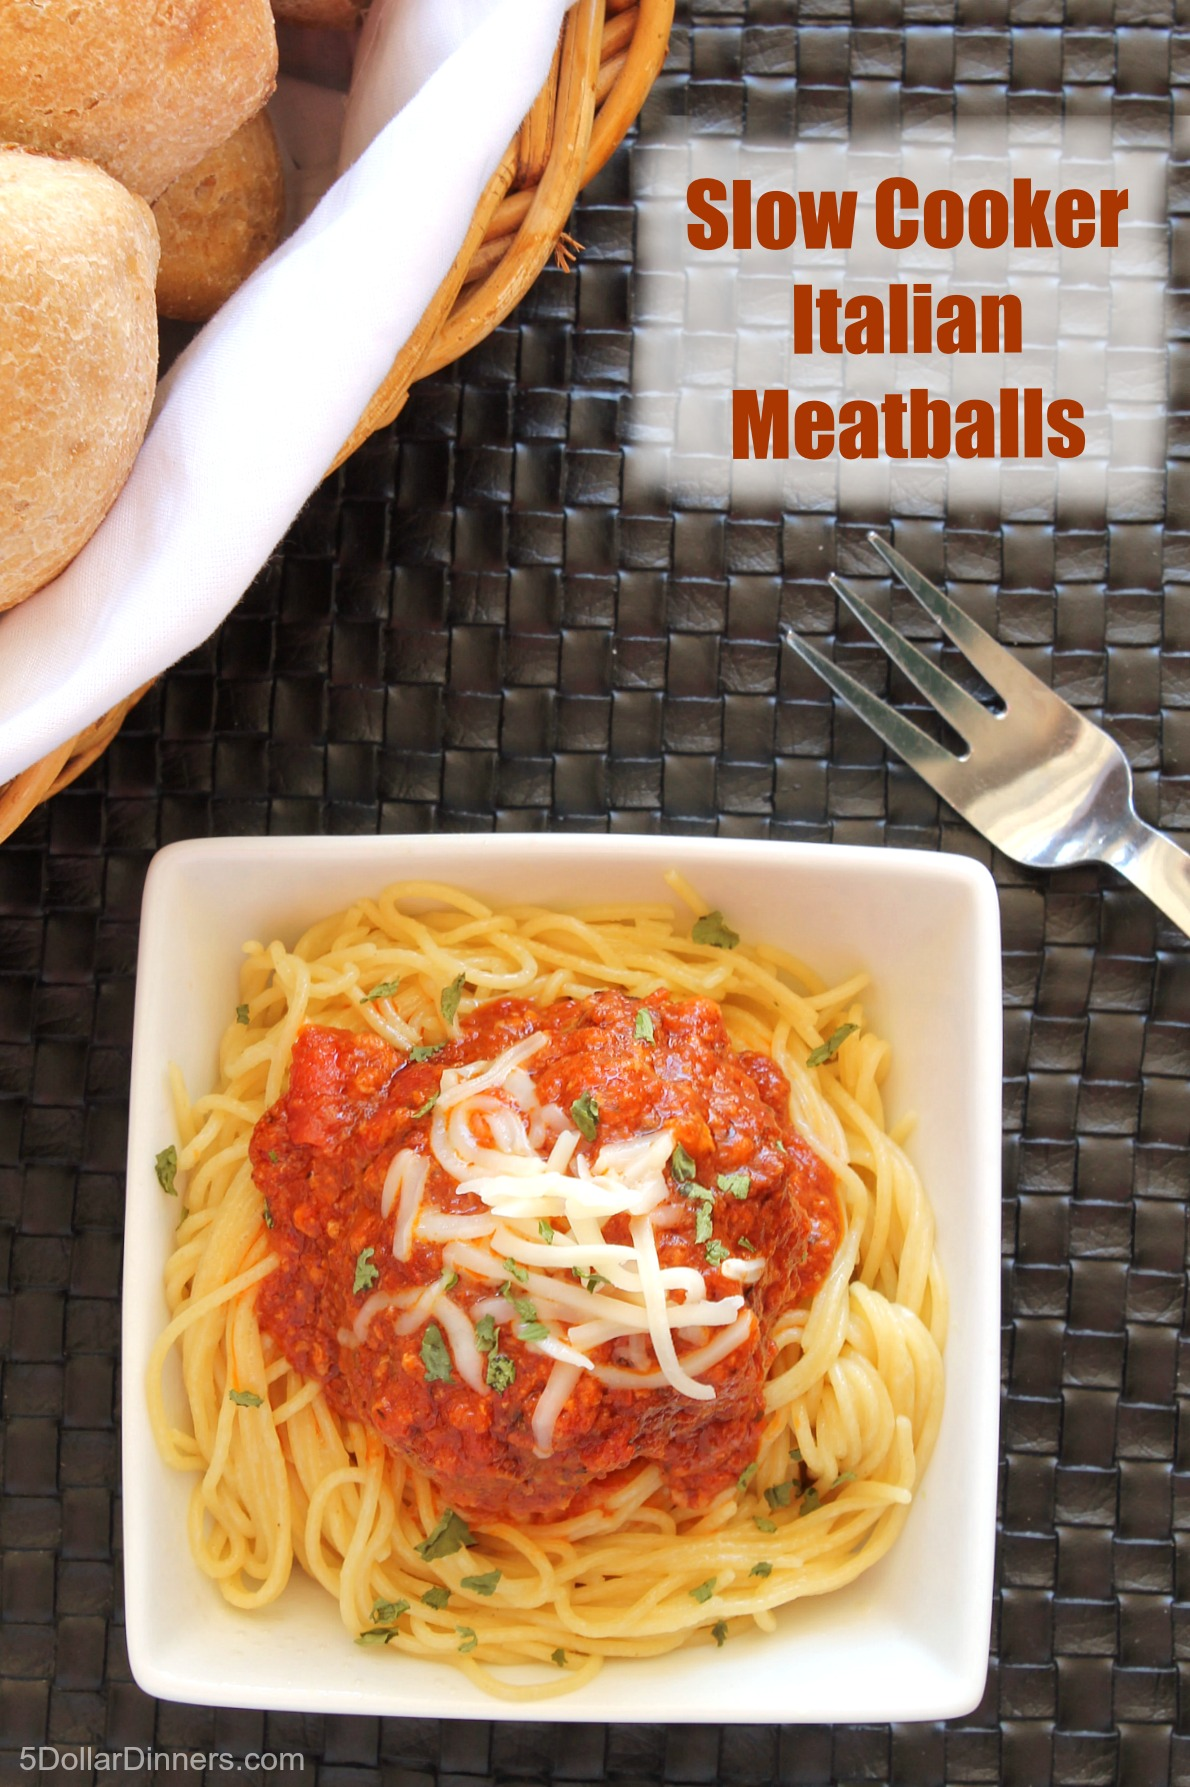 Slow Cooker Italian Meatballs from 5DollarDinners.com